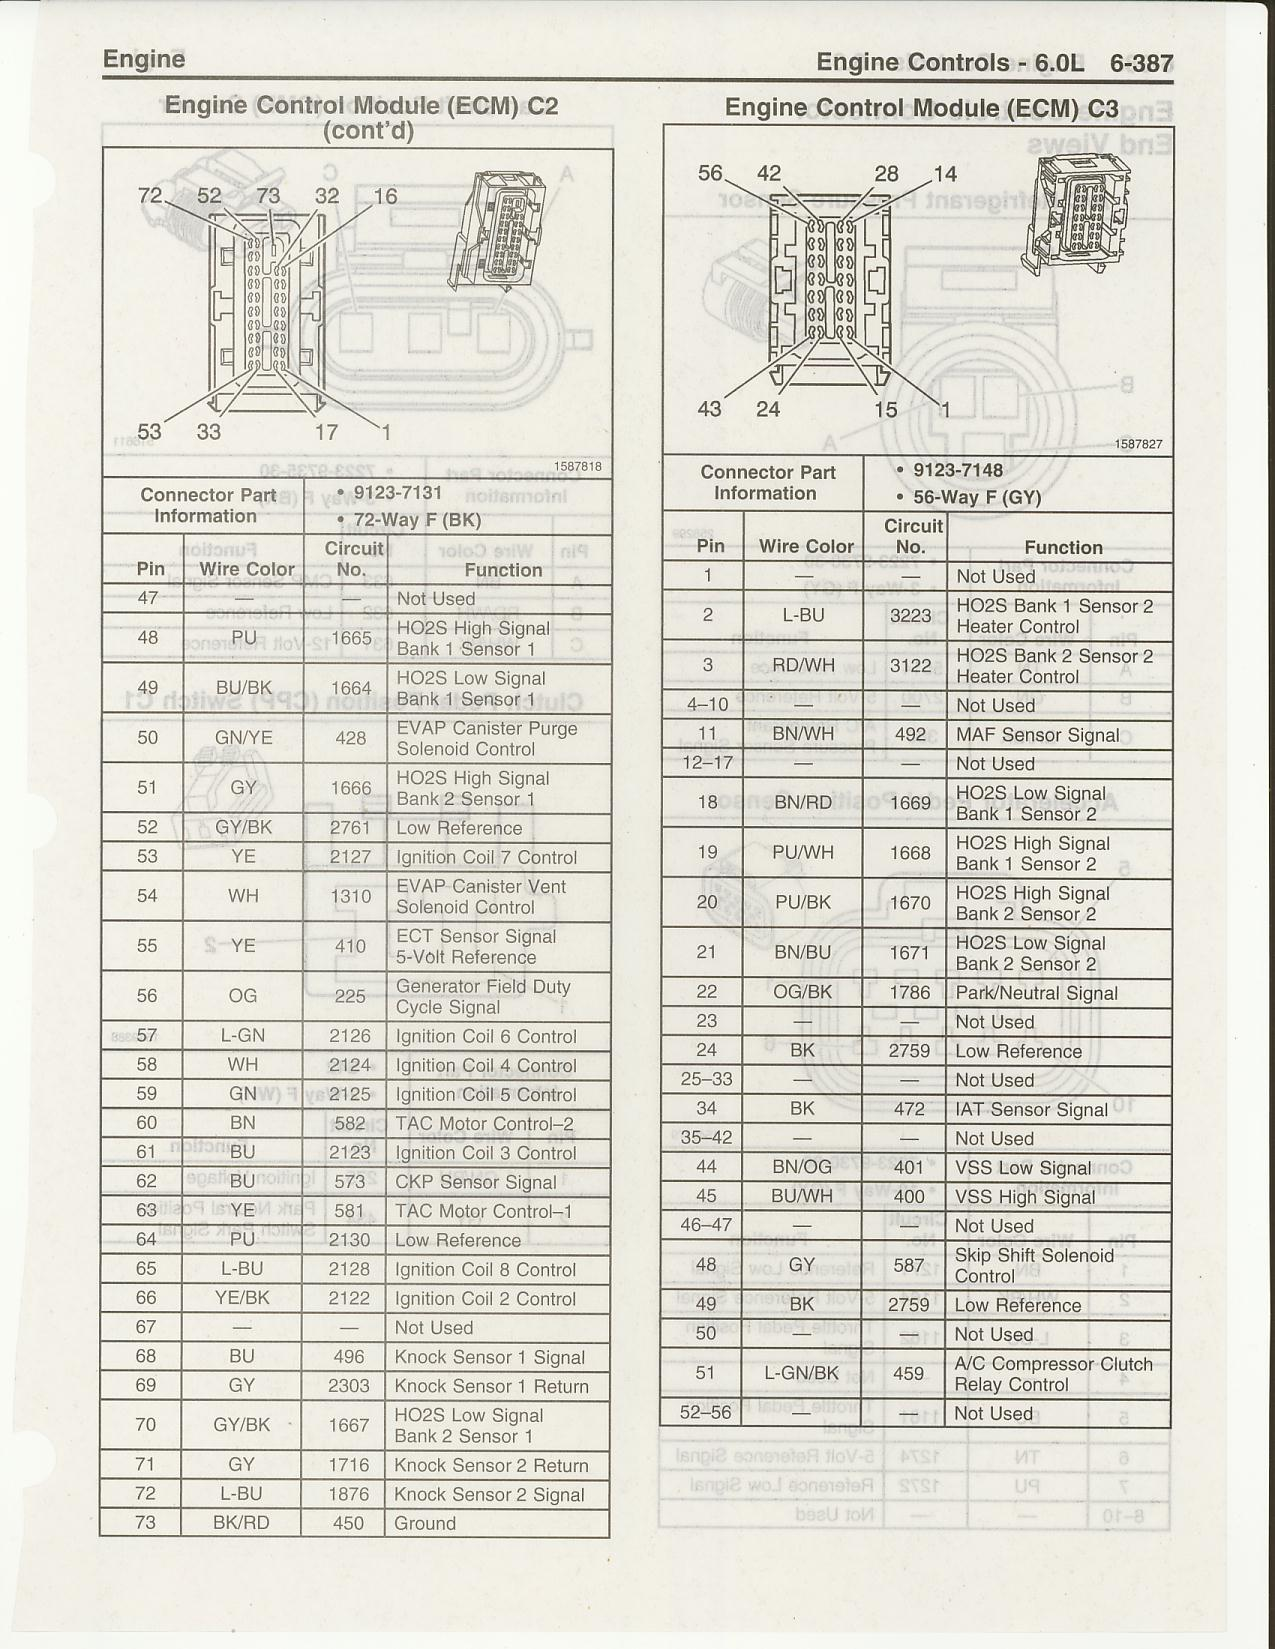 Pinouts And Wiring Diagrams Page 4 Ls1tech Camaro Firebird Gm Ly6 Engine Diagram Ls2 C2 C3